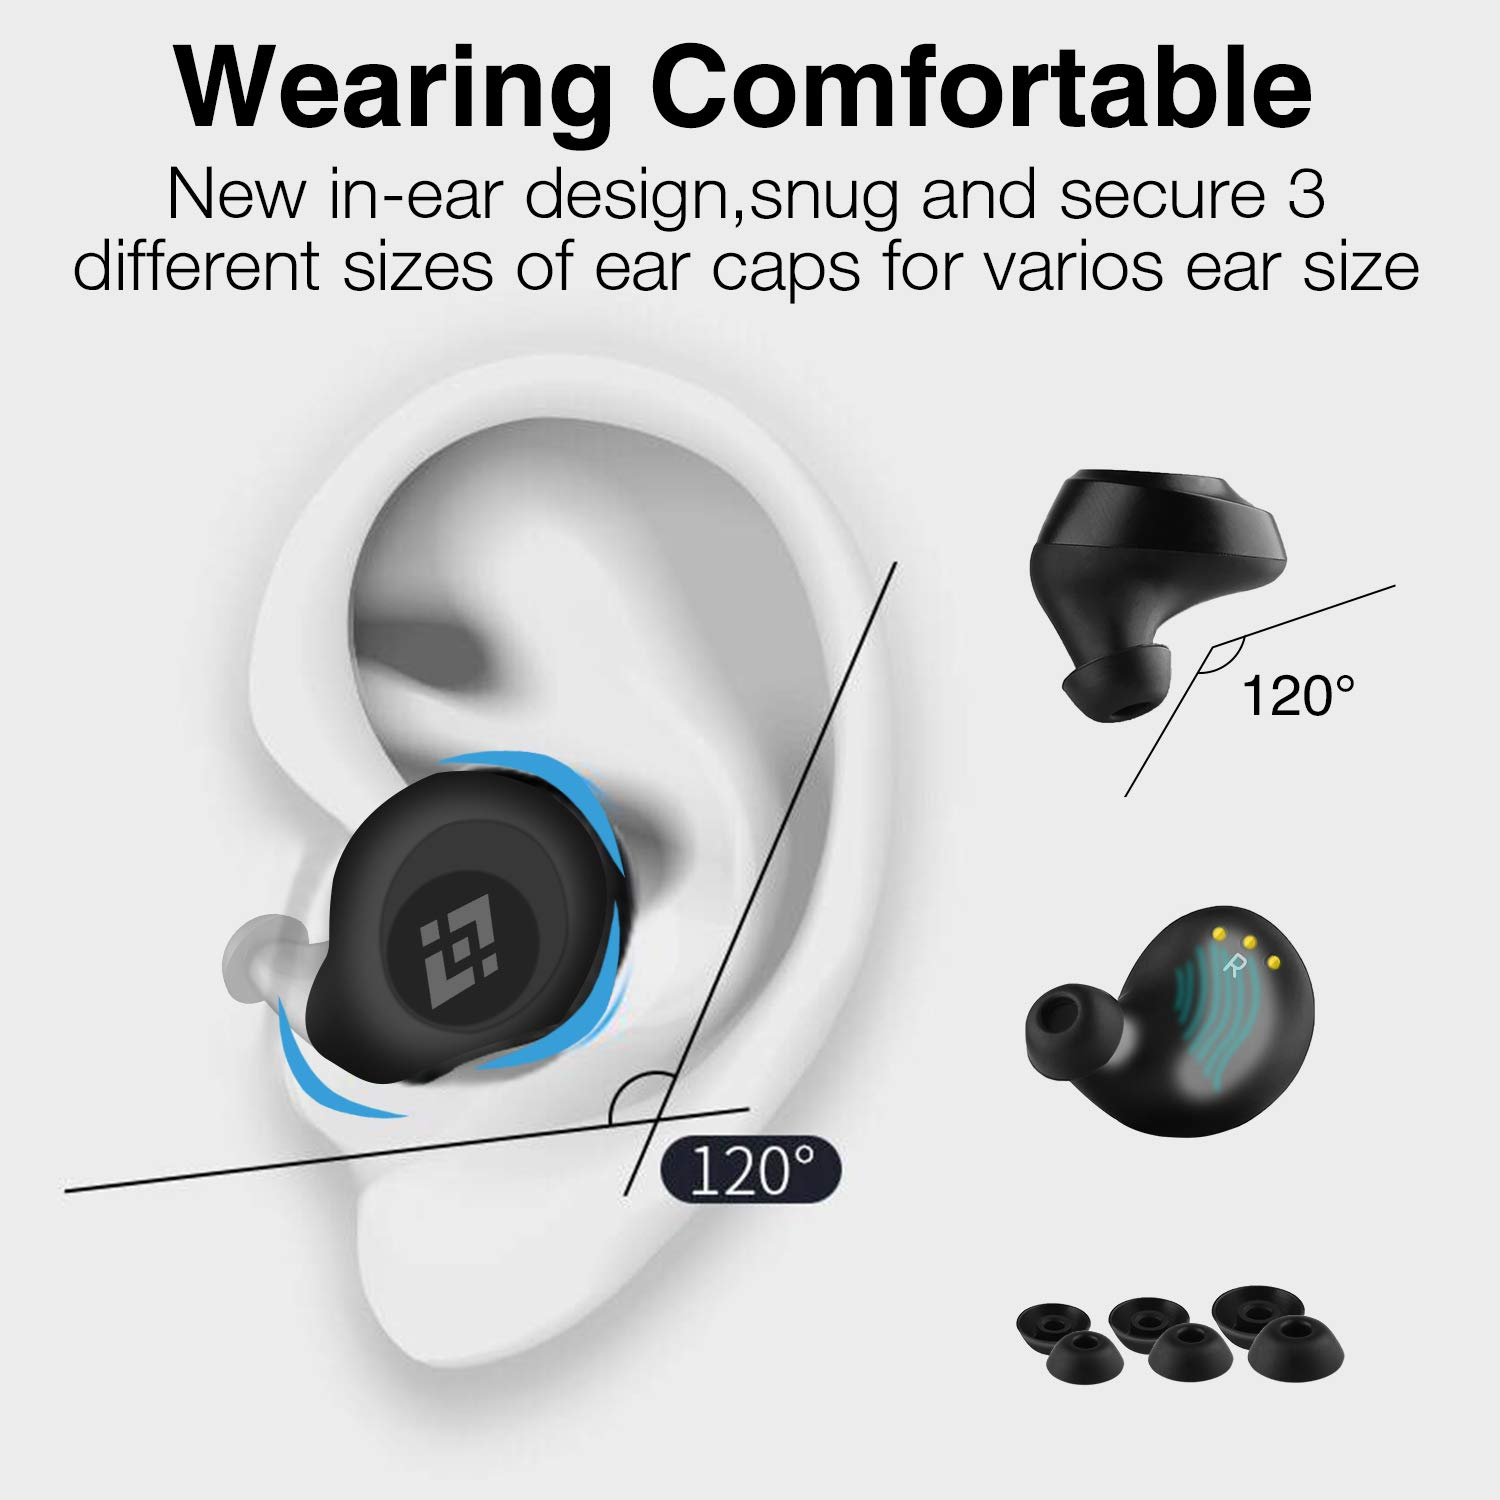 Wireless Earbuds 【Upgraded Graphene 3D Stereo Sound】 Bluetooth 5.0 with 28Hr Play Time Noise Cancelling HonShoop Lightweight Bluetooth Headphones Built-in Mic (Black) (Matte Black) by HonShoop (Image #7)